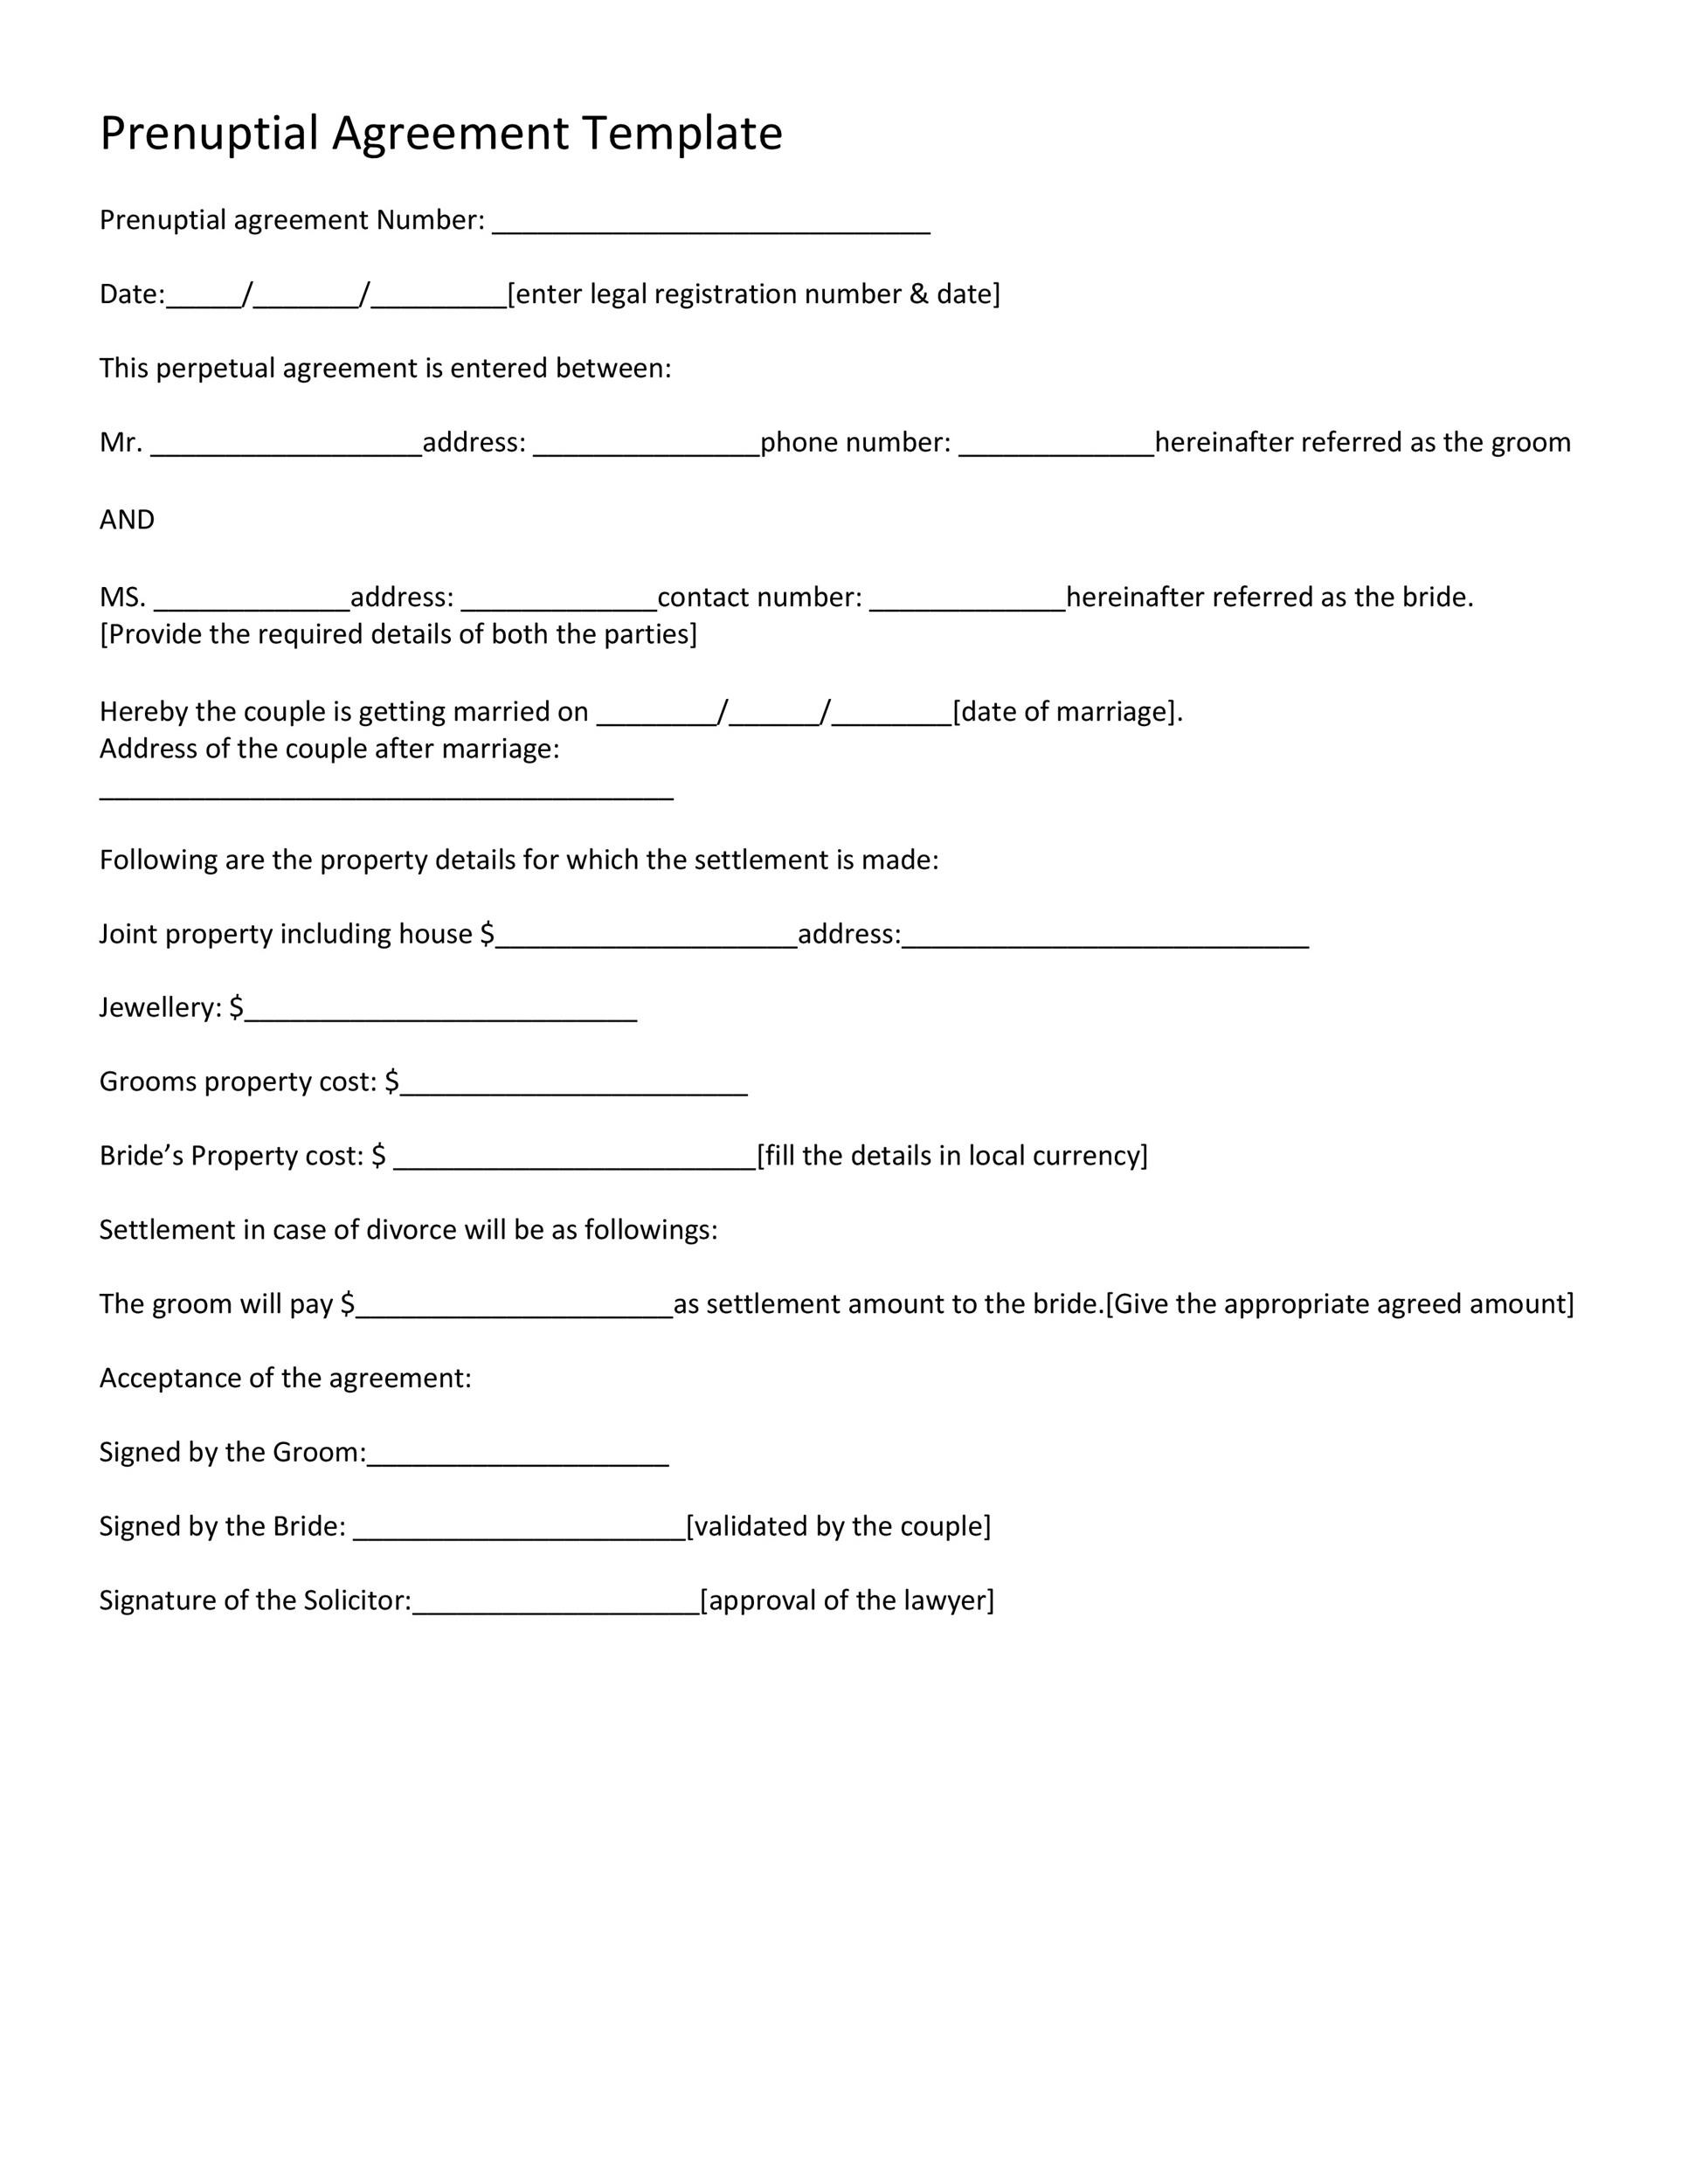 30+ Prenuptial Agreement Samples  Forms ᐅ Template Lab